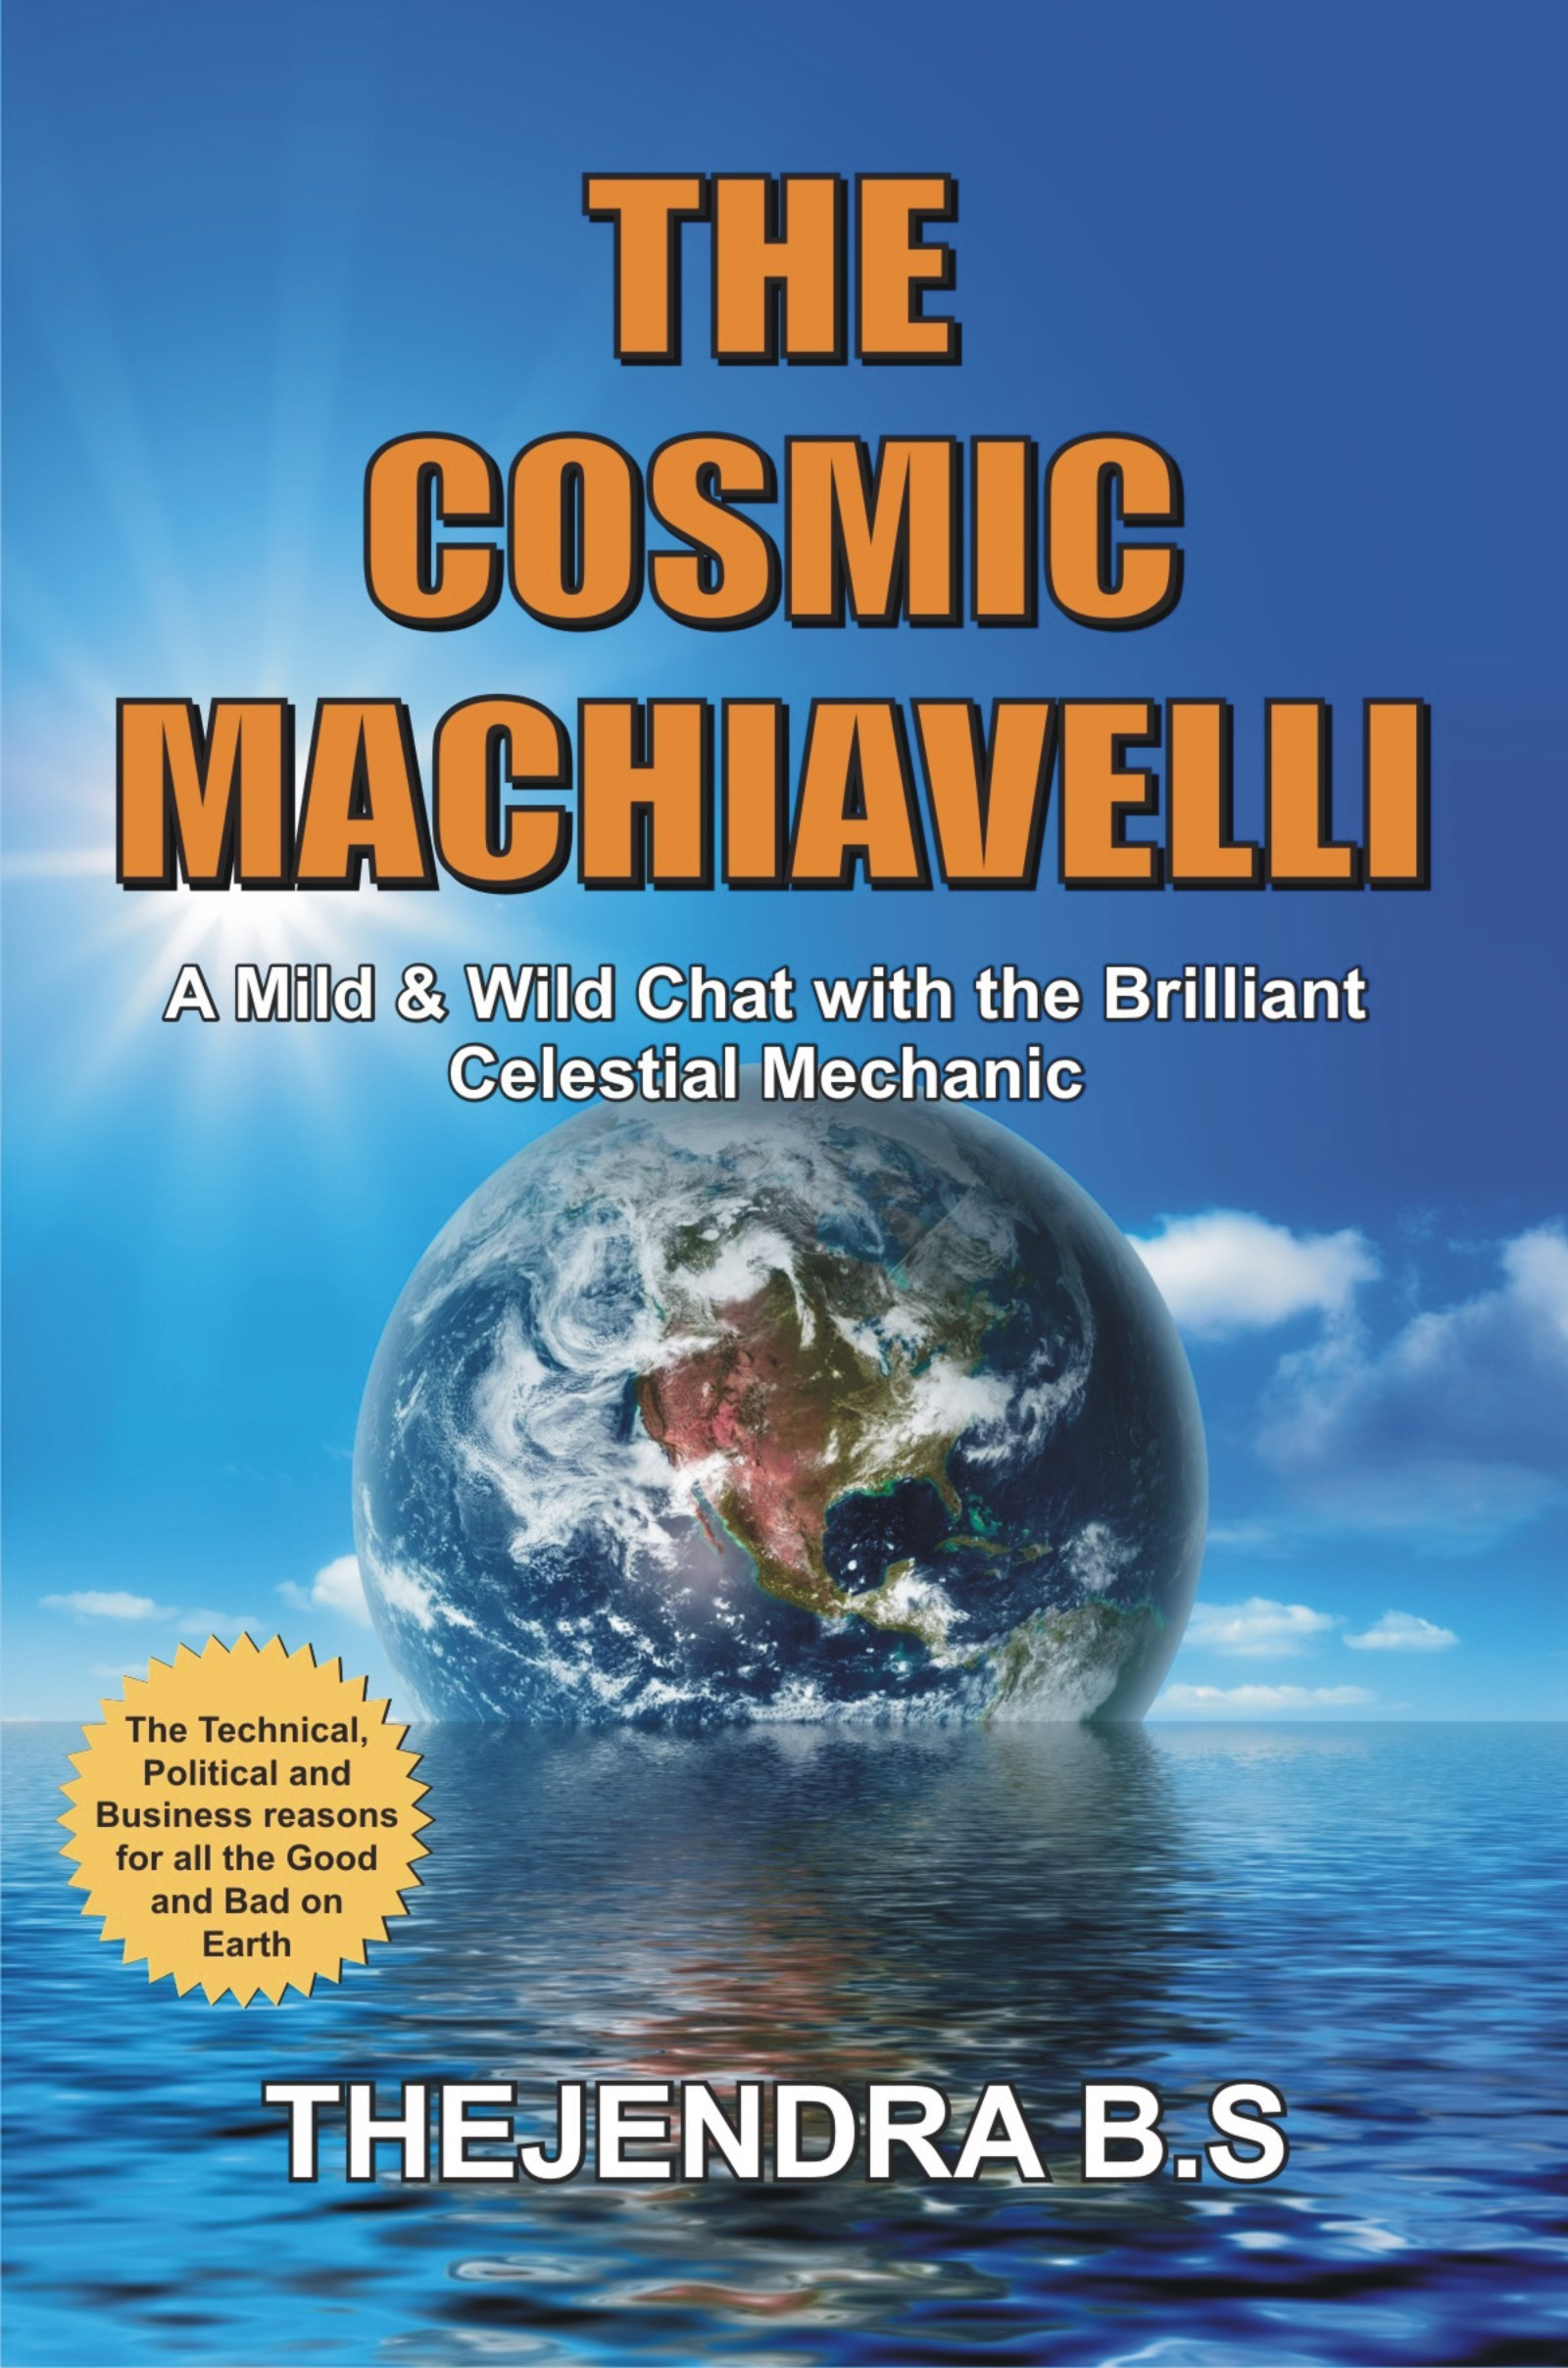 The Cosmic Machiavelli: A Mild & Wild Chat with the Brilliant Celestial Mechanic